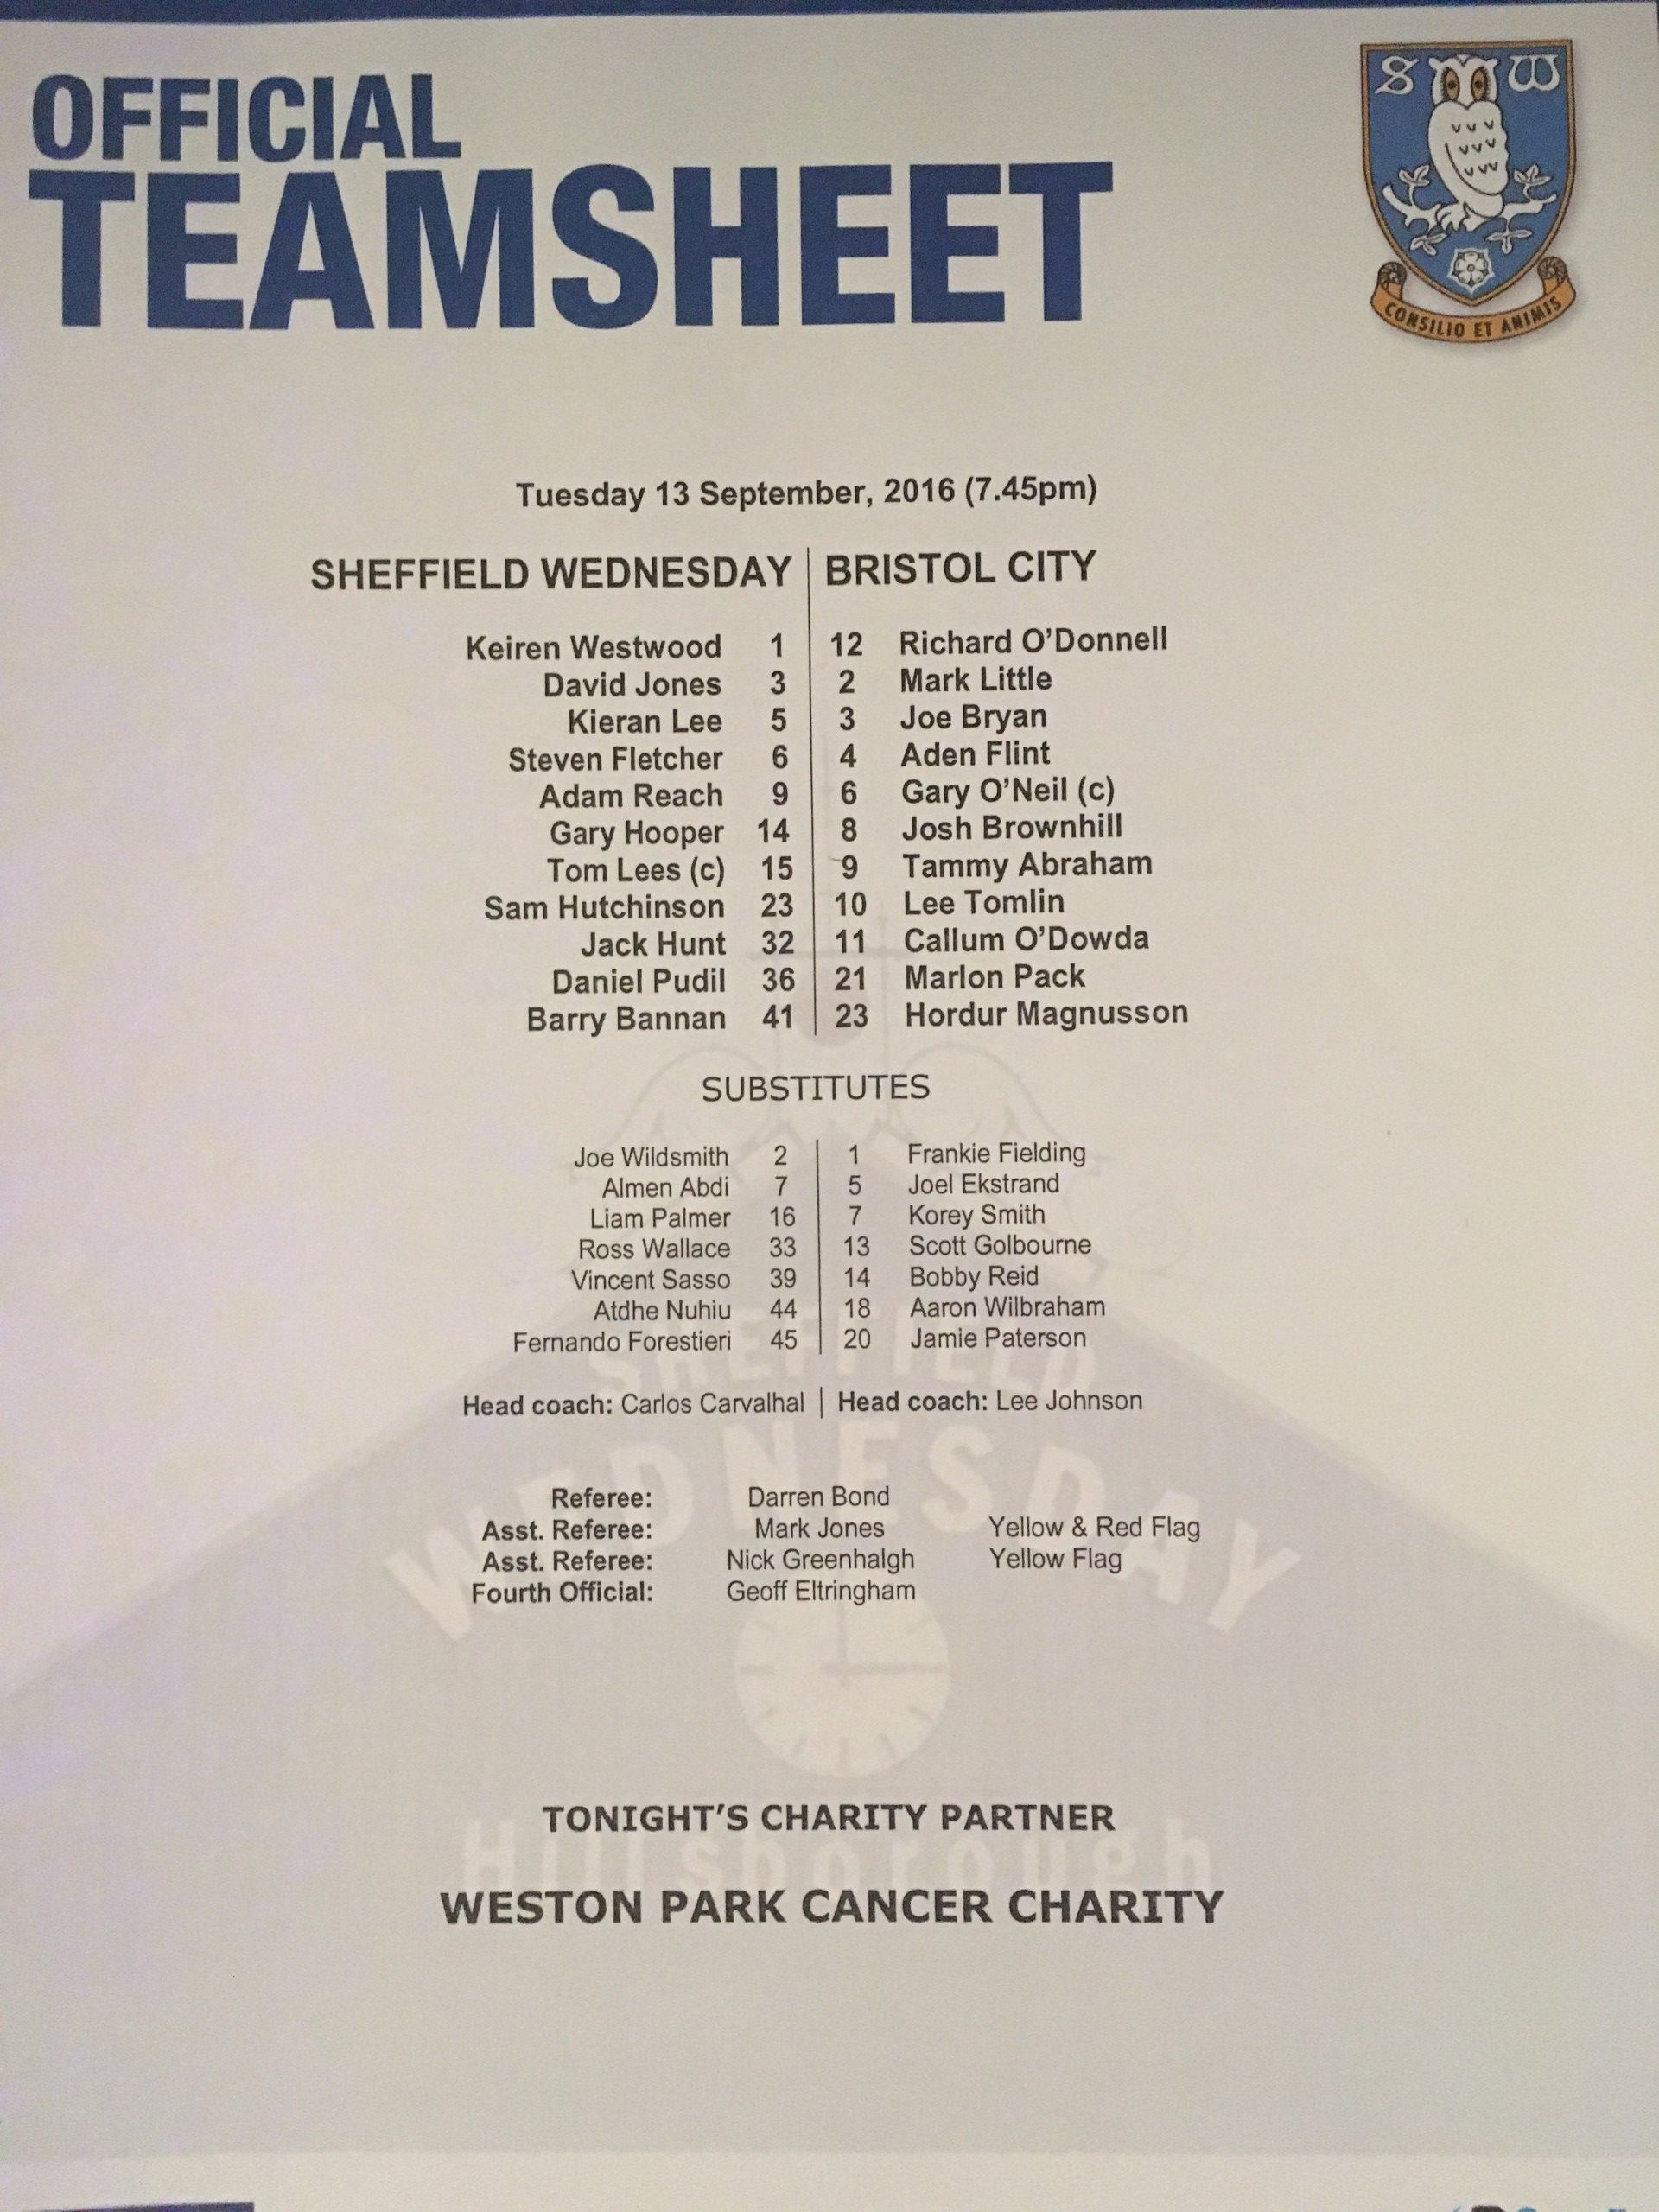 Sheffield Wednesday v Bristol City 13-09-2016 Team Sheet